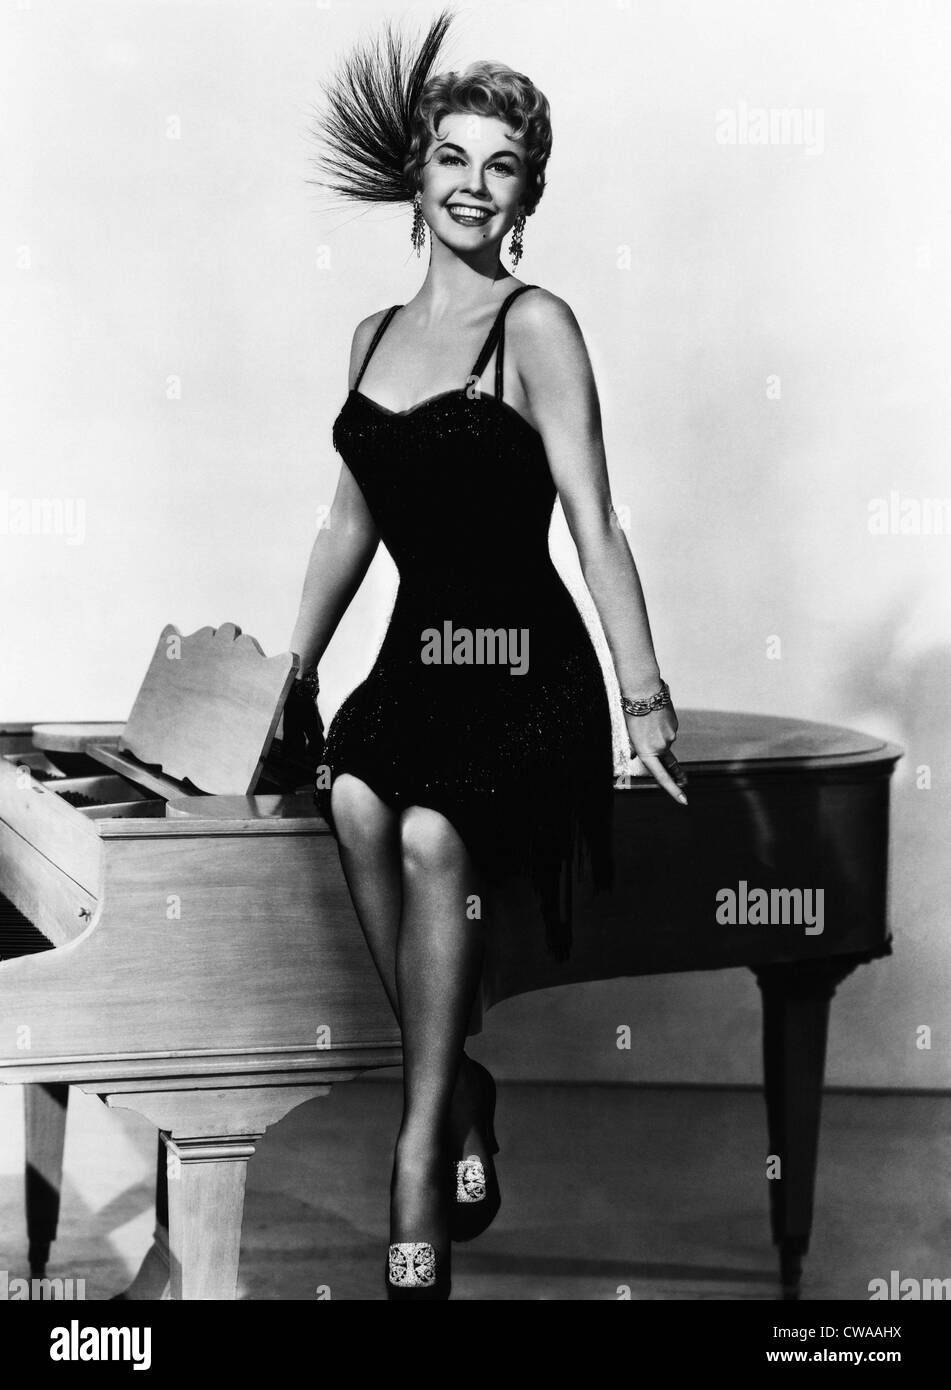 LOVE ME OR LEAVE ME, Doris Day, 1955. Höflichkeit: CSU Archive / Everett Collection Stockbild